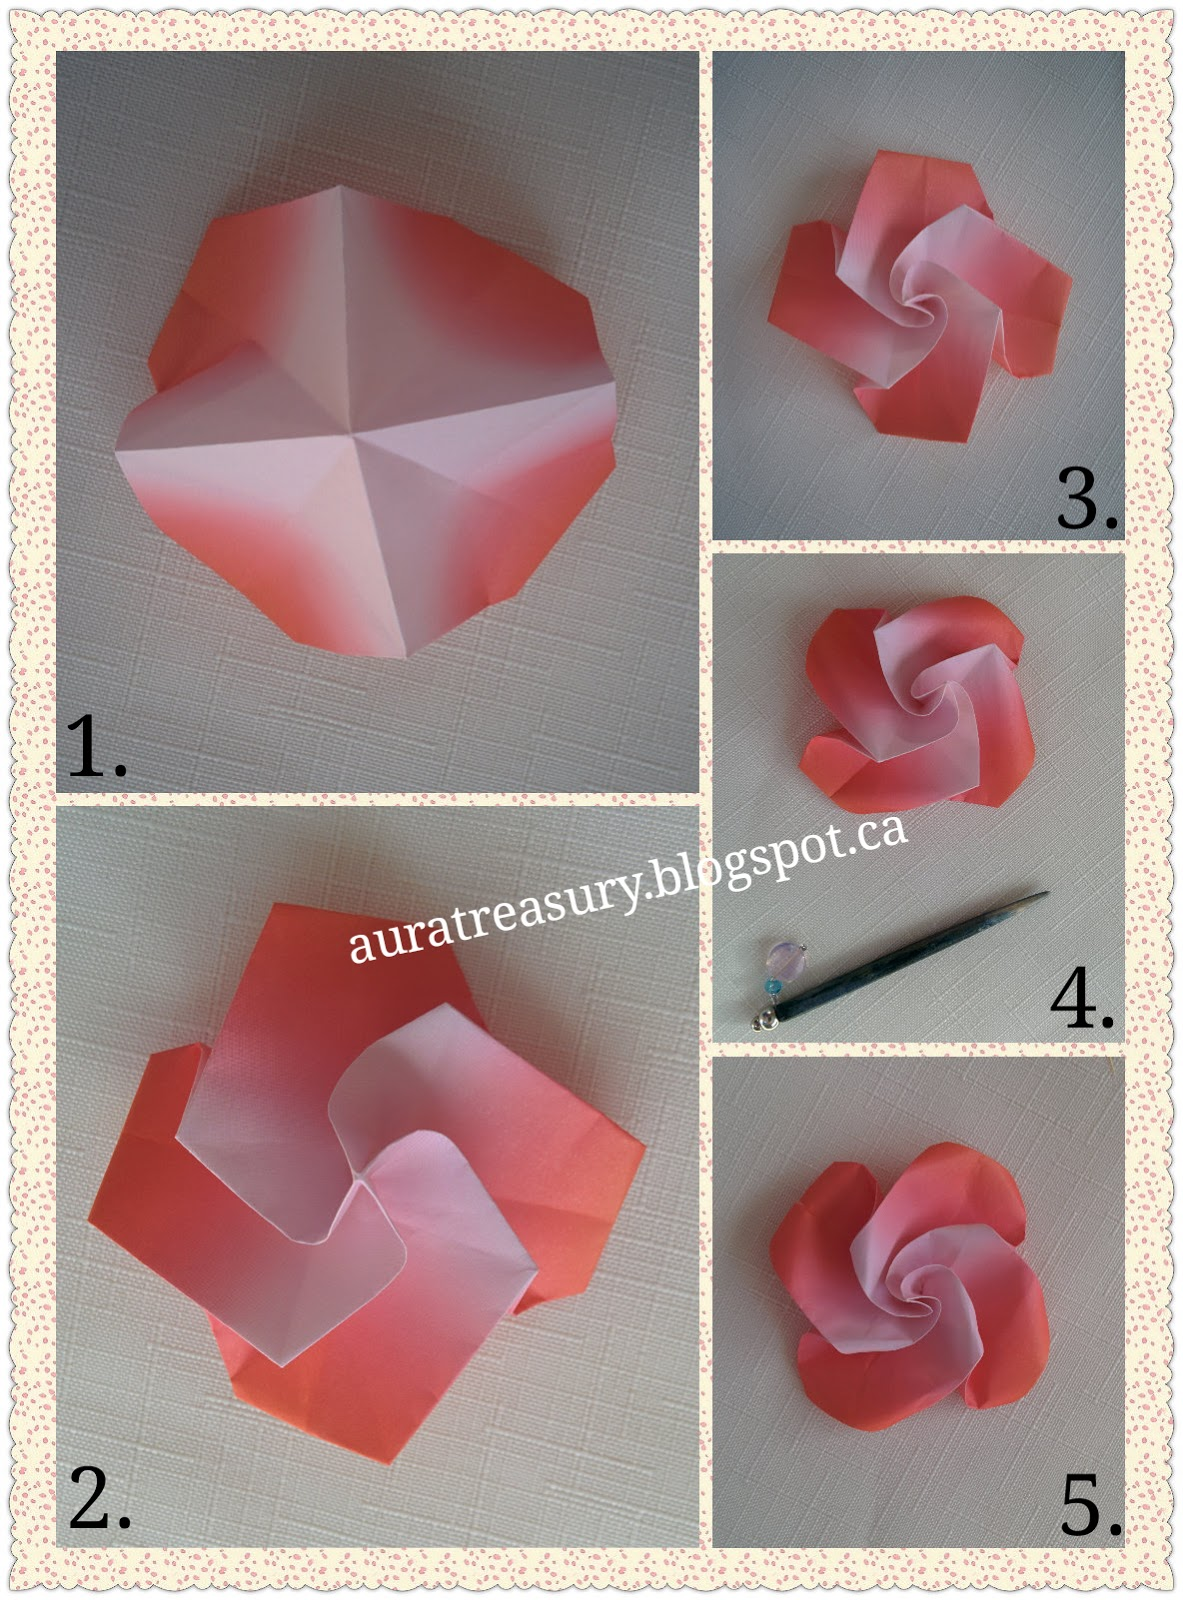 aura treasury diy valentines origami flowers